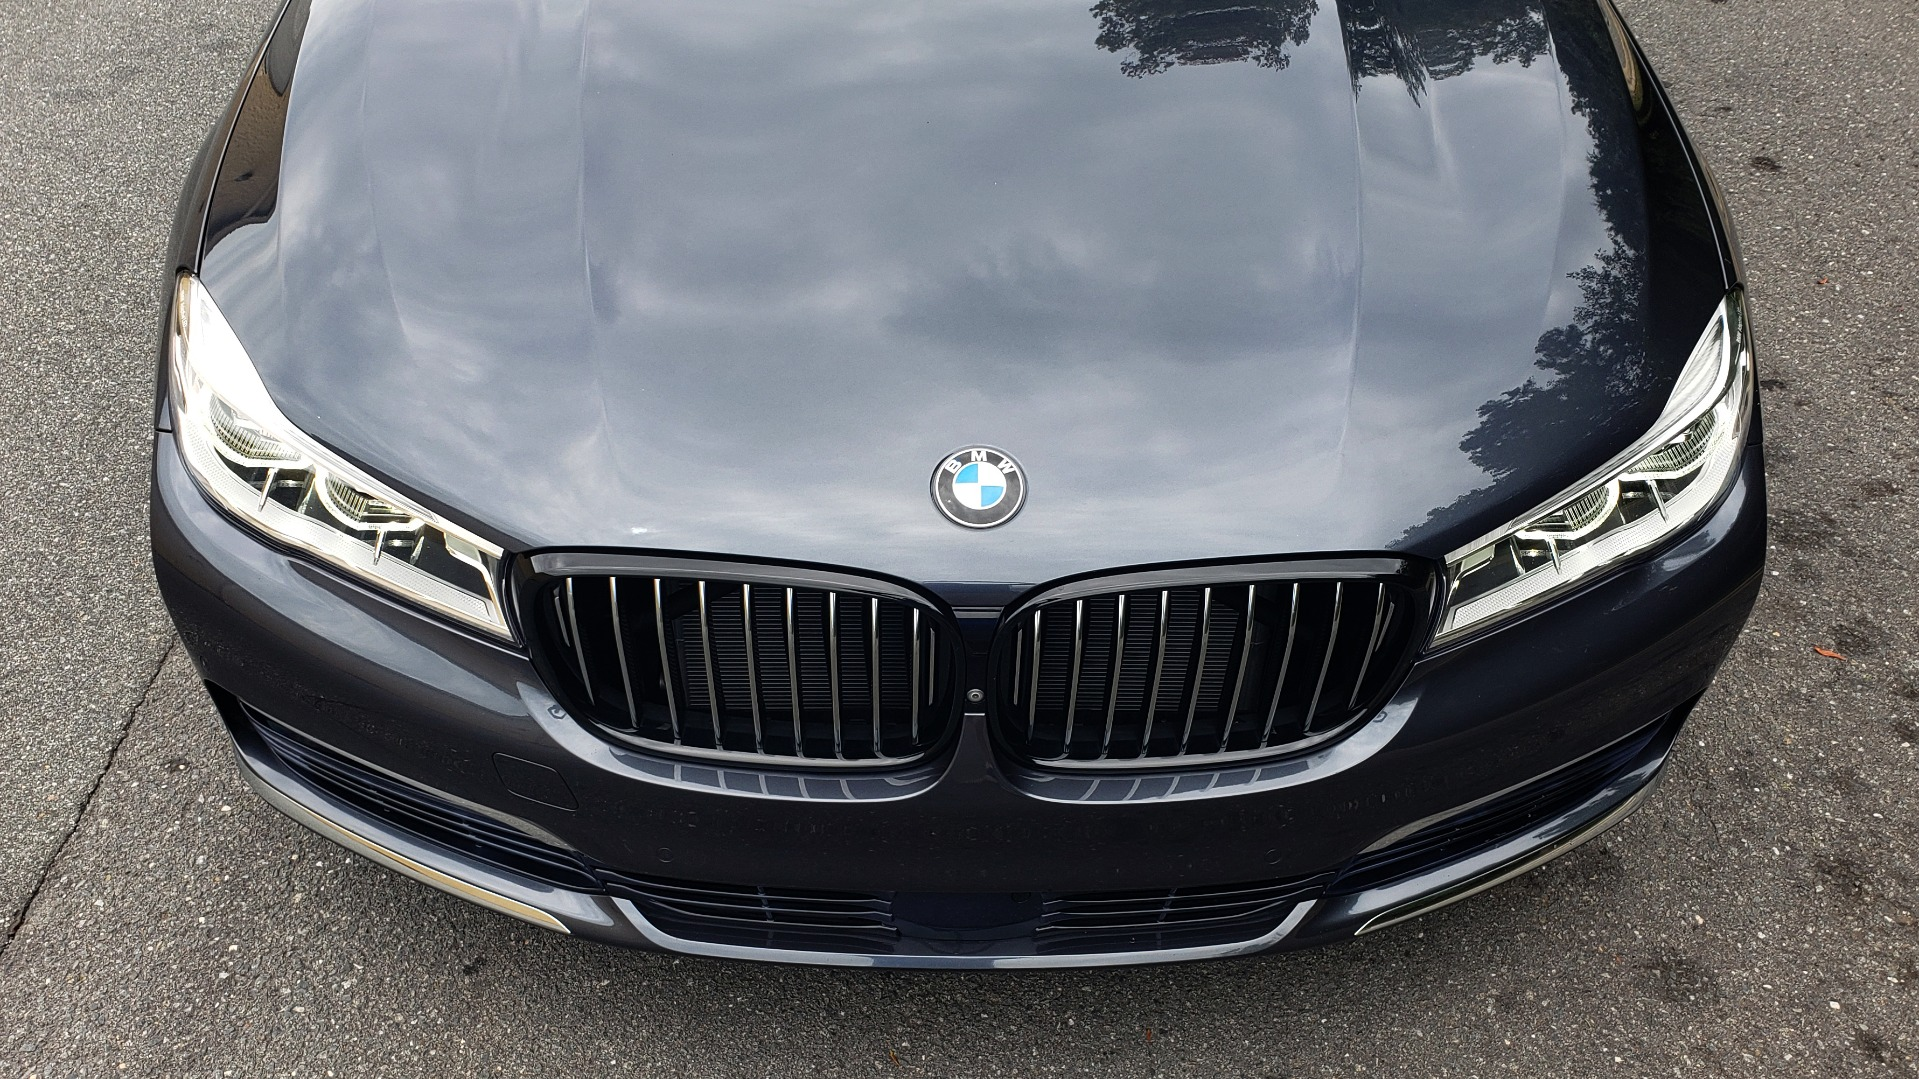 Used 2016 BMW 7 SERIES 750I EXEC PKG / DRVR ASST PLUS / CLD WTHR / SKY LOUNGE ROOF for sale Sold at Formula Imports in Charlotte NC 28227 13